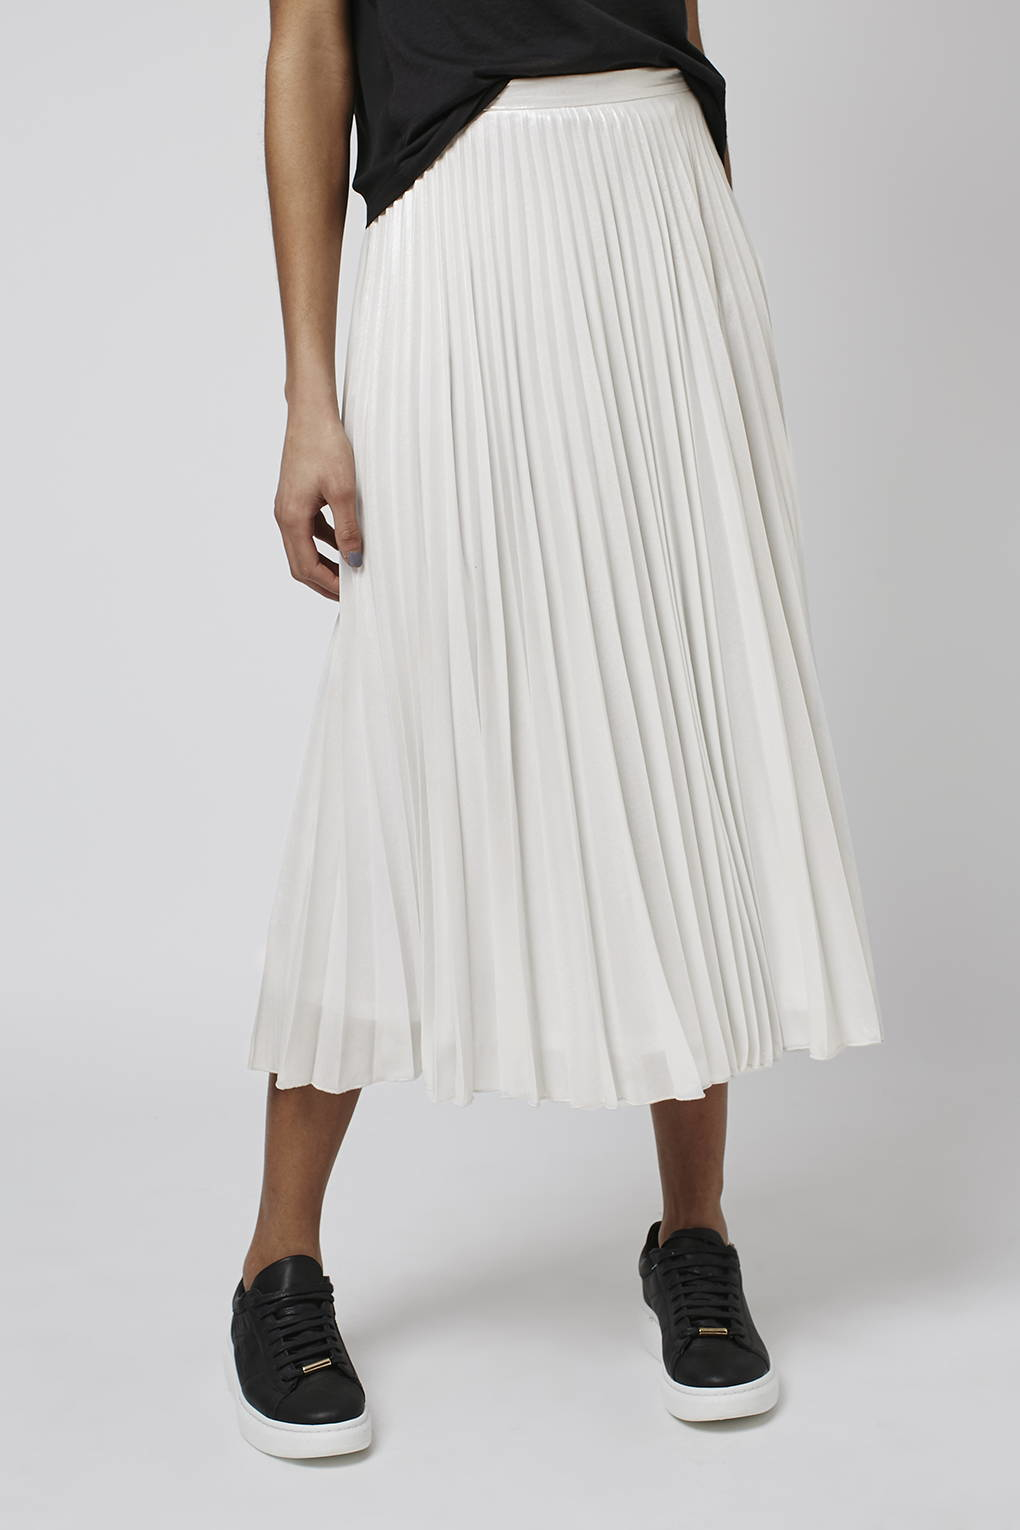 Topshop Iridescent Pleat Skirt in White | Lyst